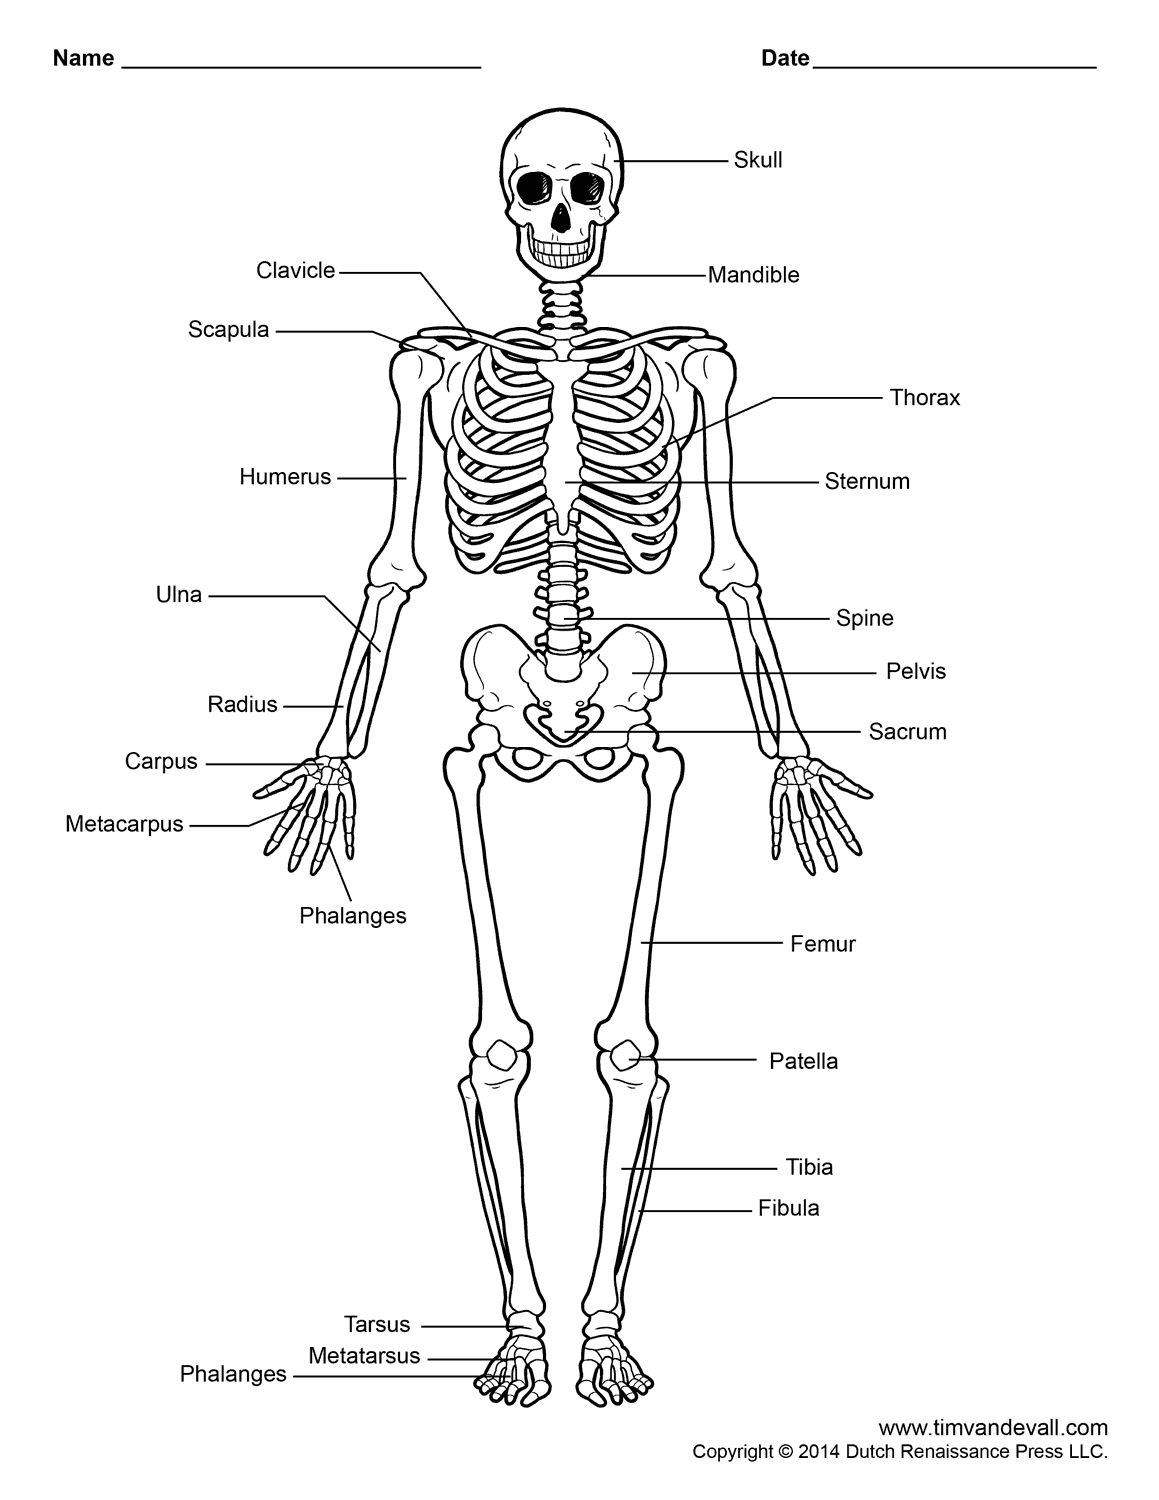 Body Bone Parts Name With Picture Diagram Human Body 4